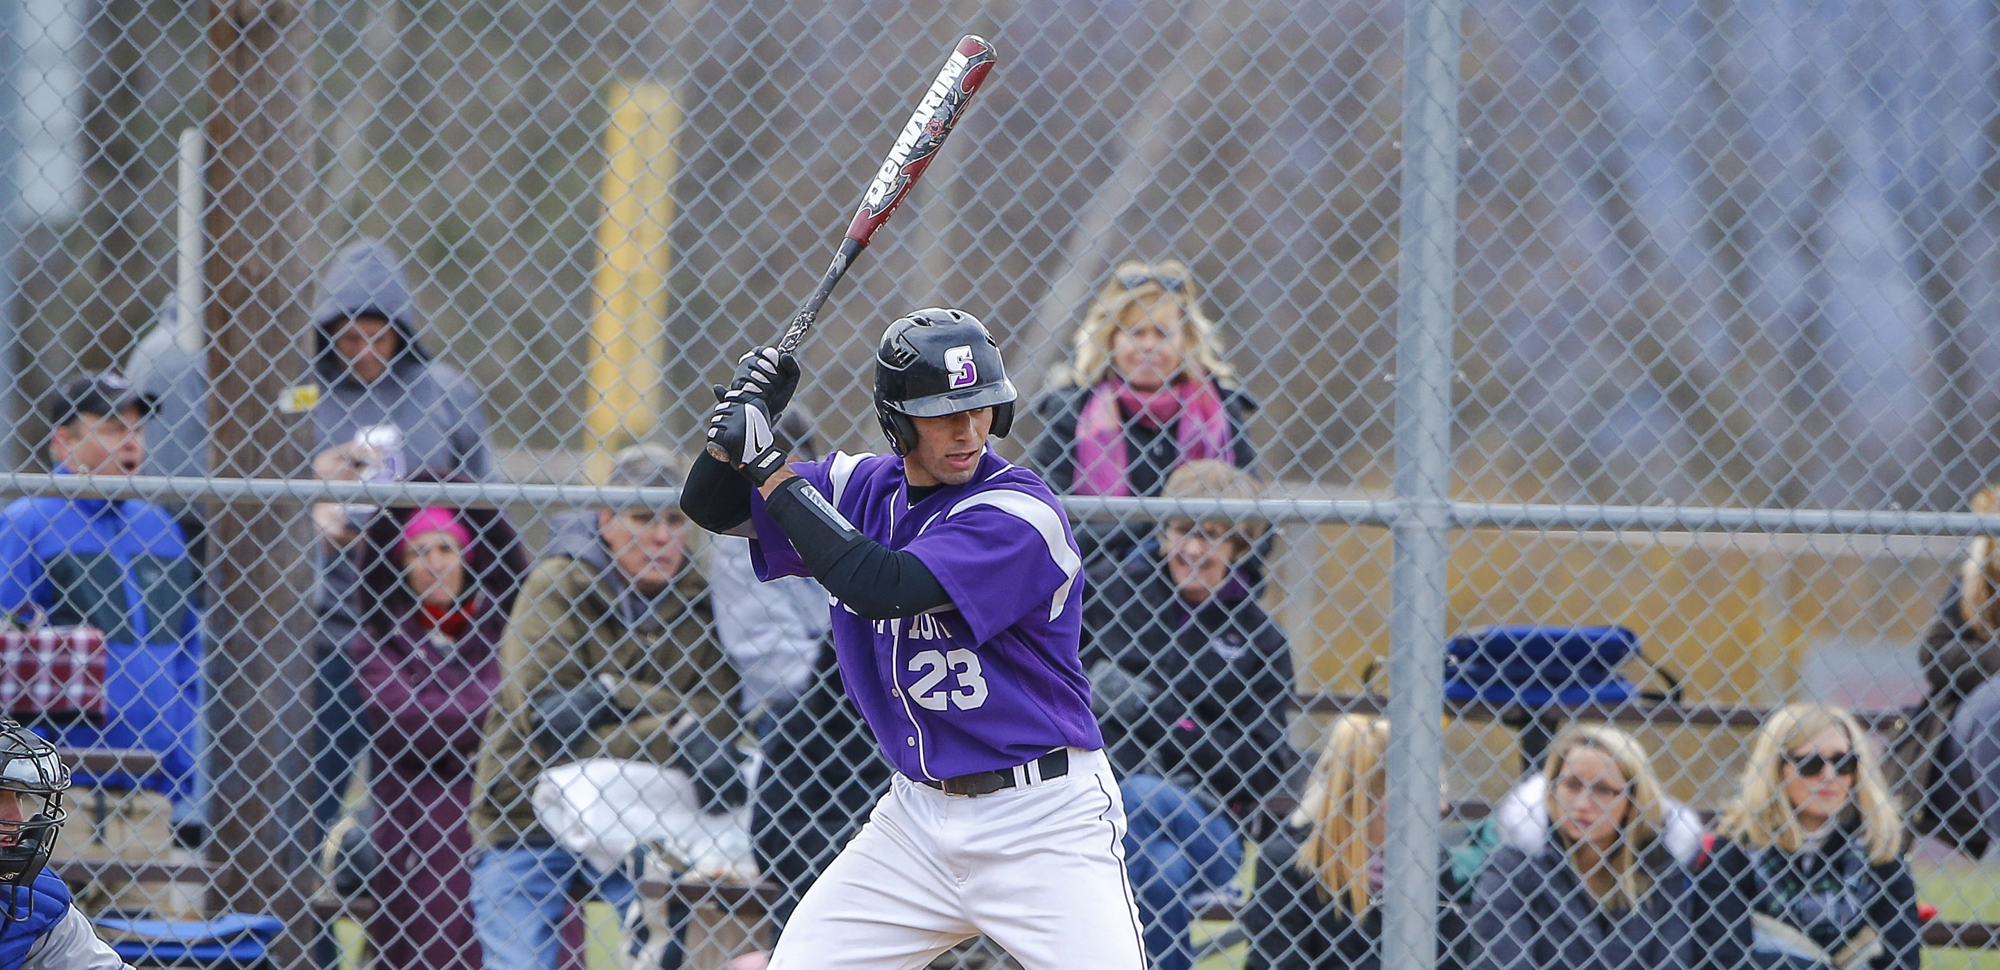 Senior Chase Standen homered twice on Saturday, ripping a grand slam in the first game and launching a three-run shot in the second.